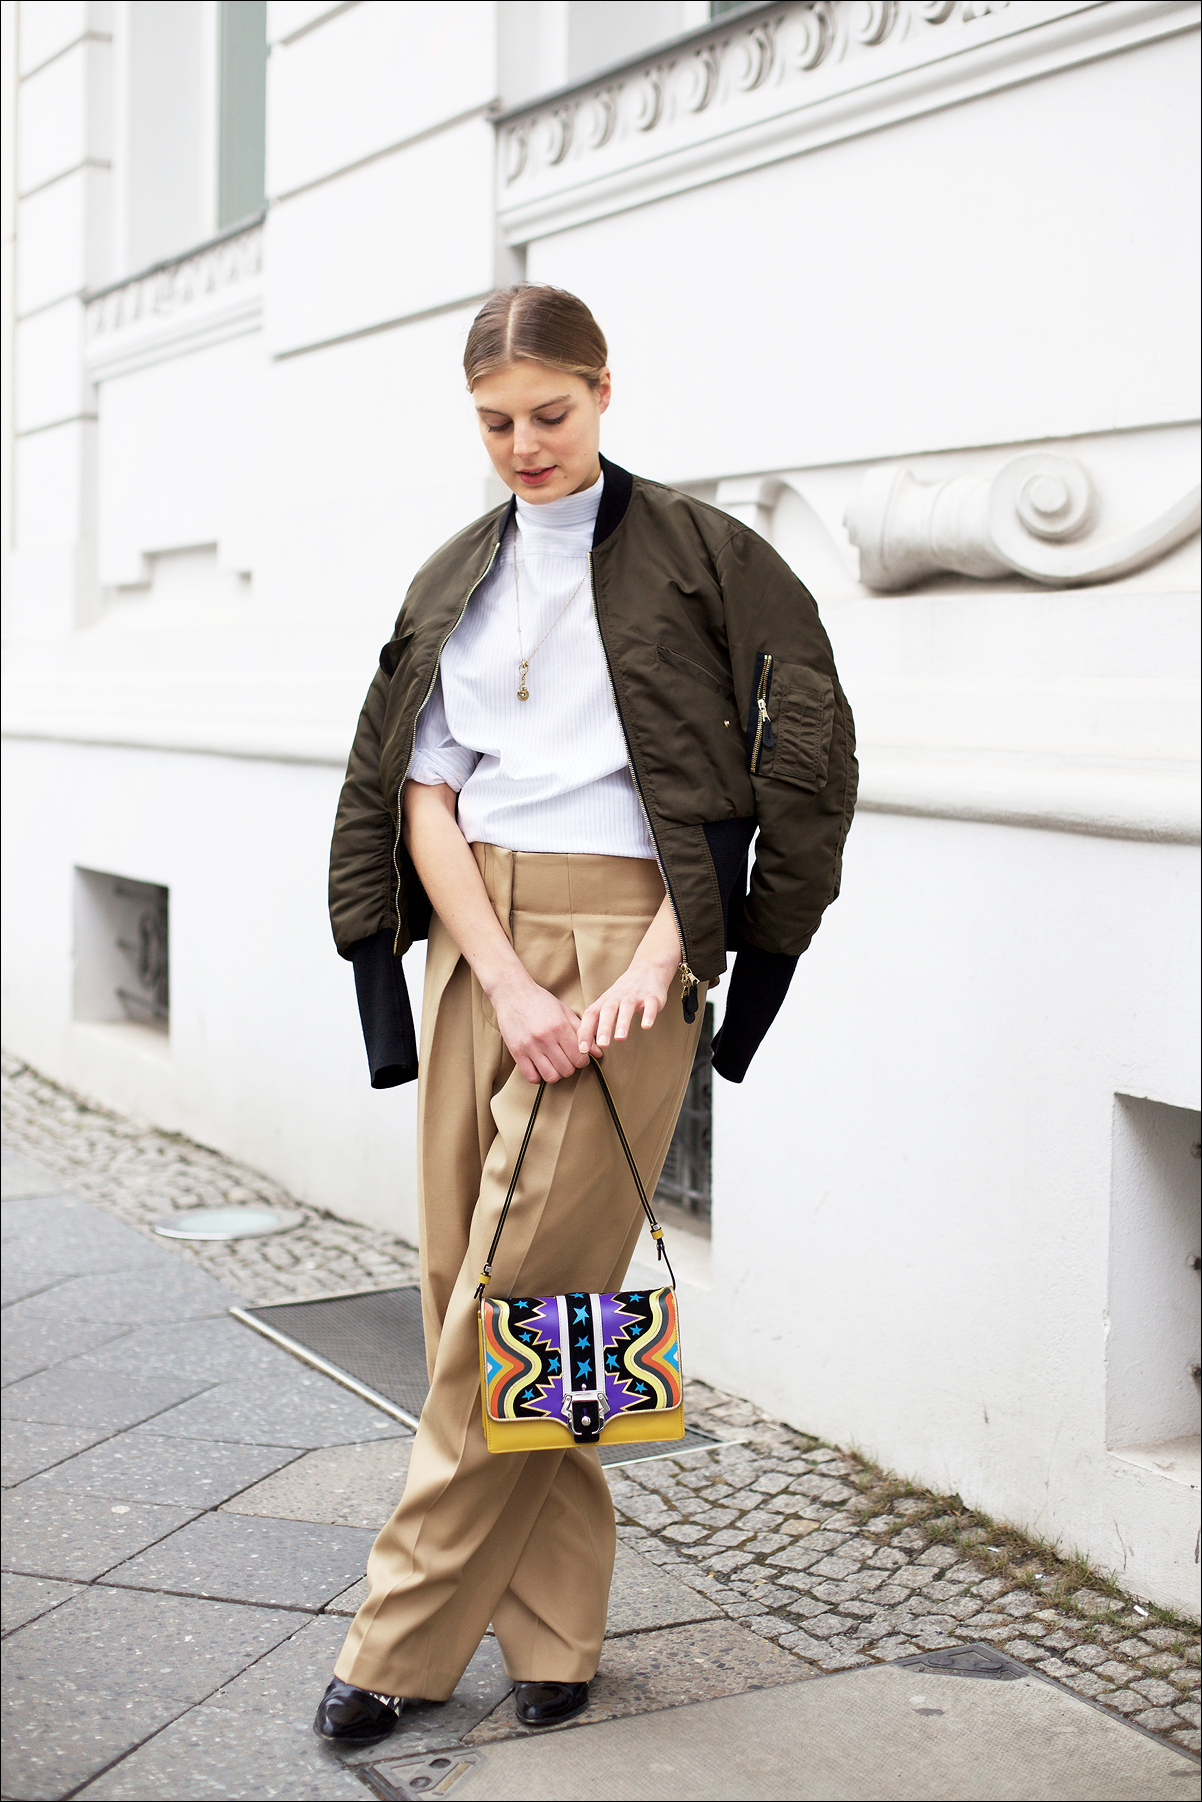 Spruced-BomberJacket-ClaireBeermann1